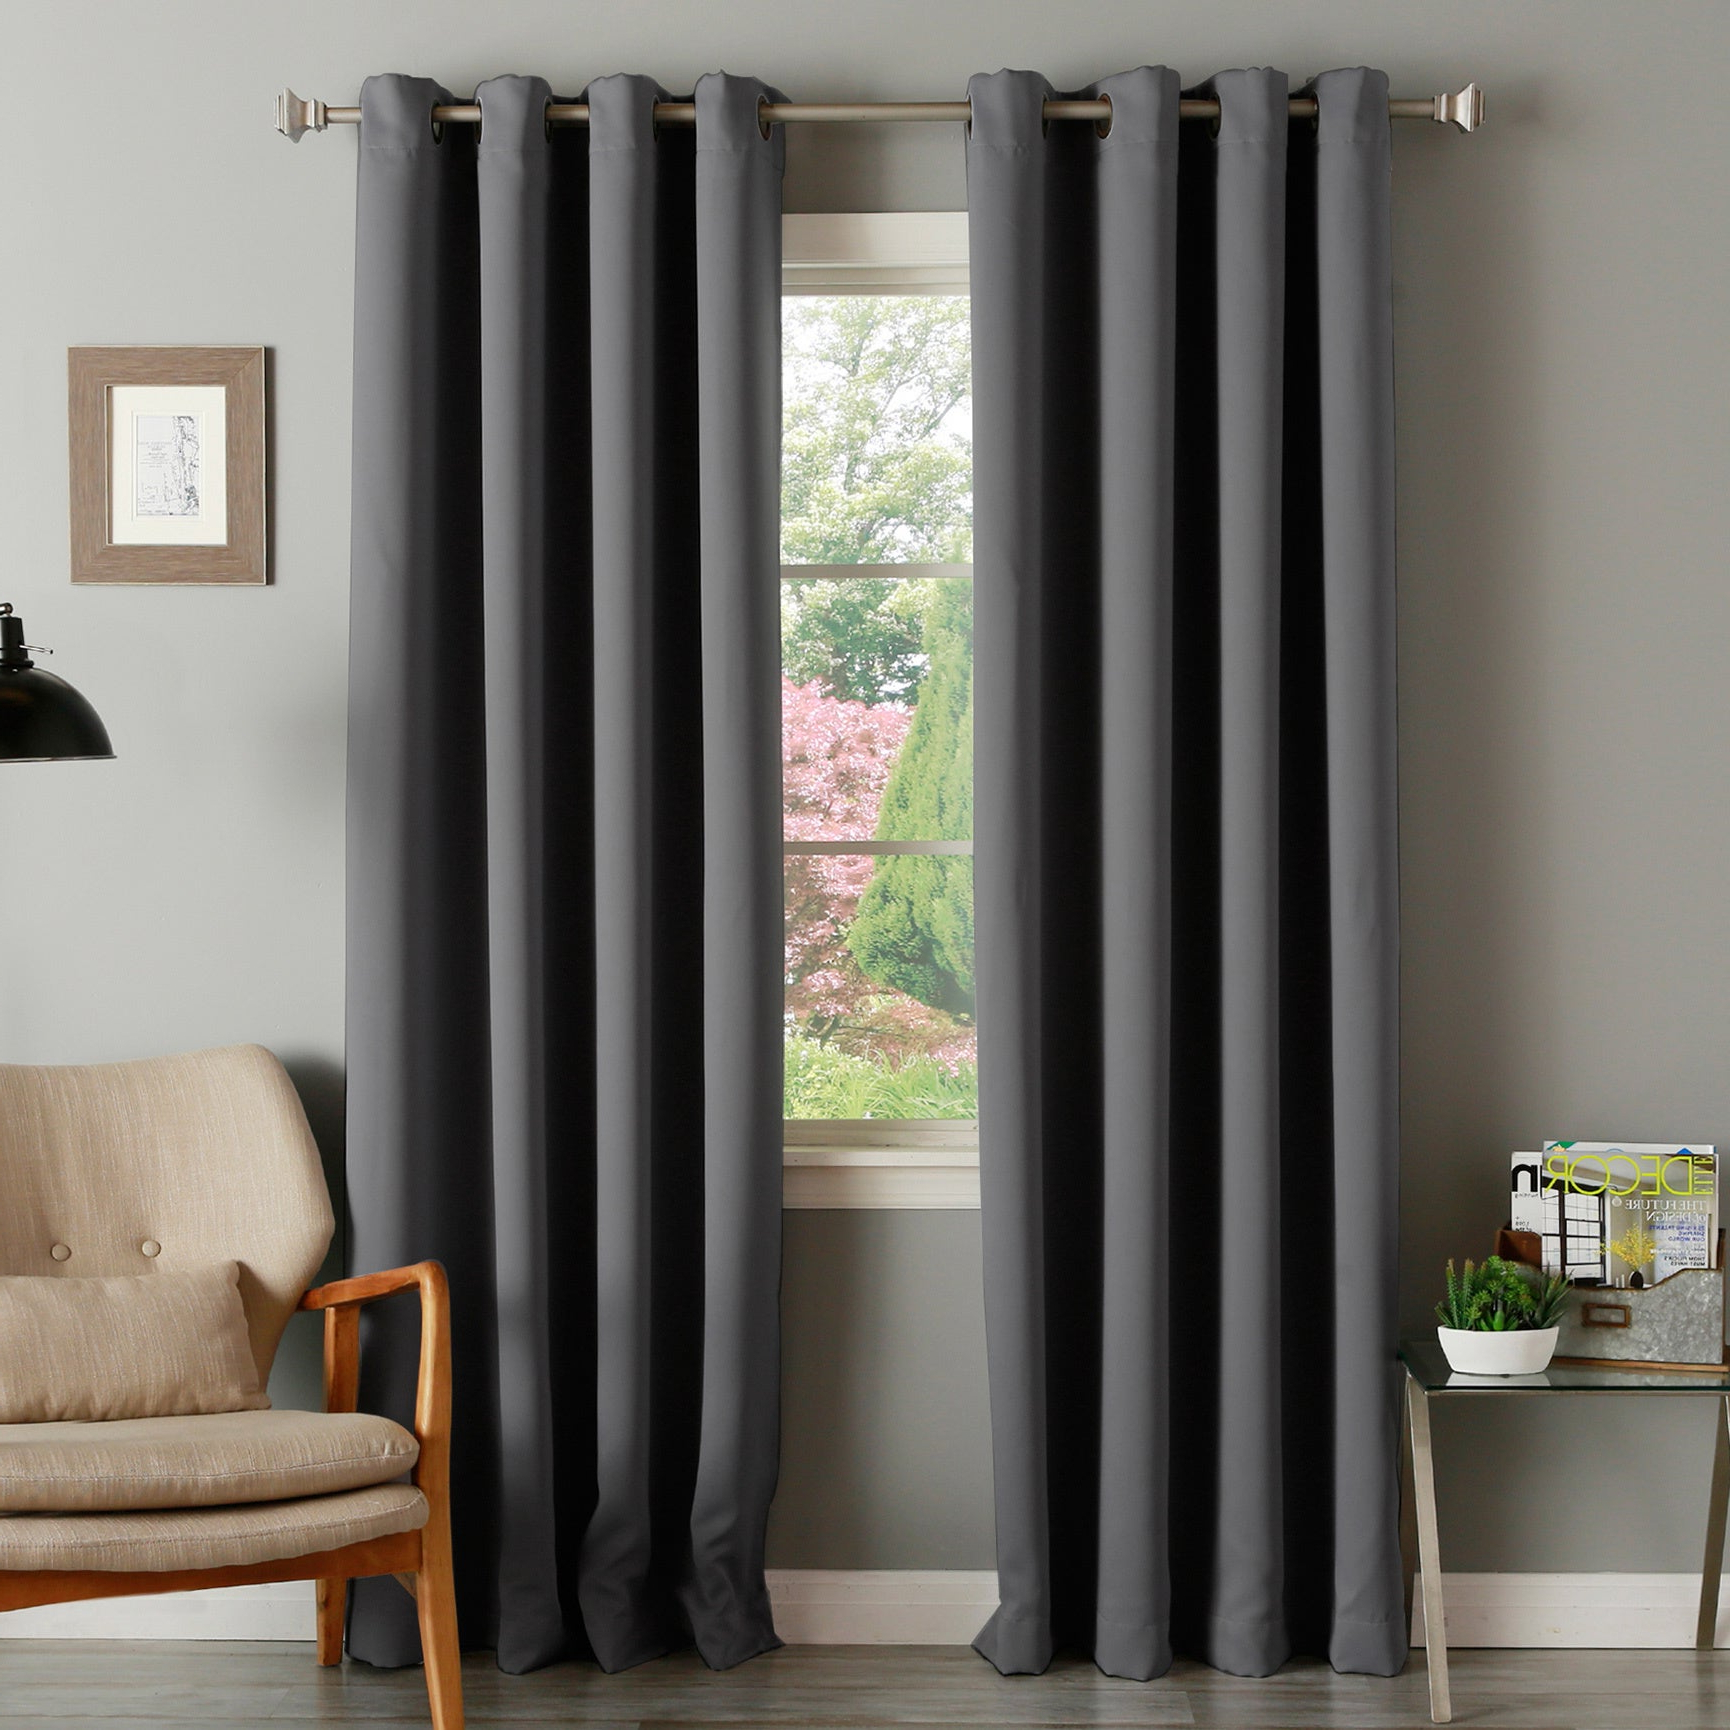 Aurora Home Thermal Insulated Blackout Grommet Top 84 Inch Curtain Panel Pair – 52 X 84 Inside 2020 Grommet Top Thermal Insulated Blackout Curtain Panel Pairs (View 2 of 20)